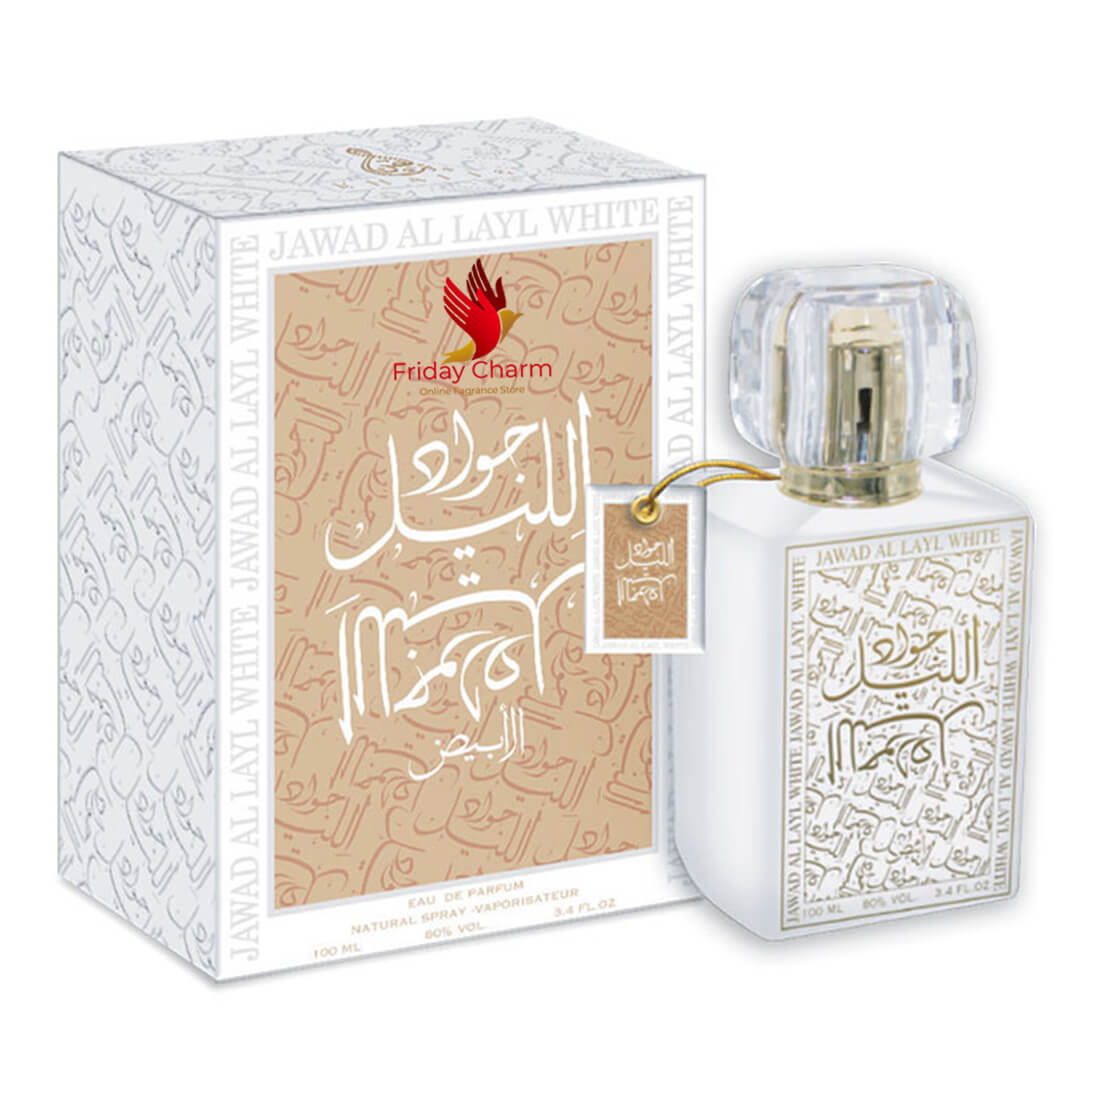 Khalis Jawad Al Layl White Fragrance Spray - 100 ml